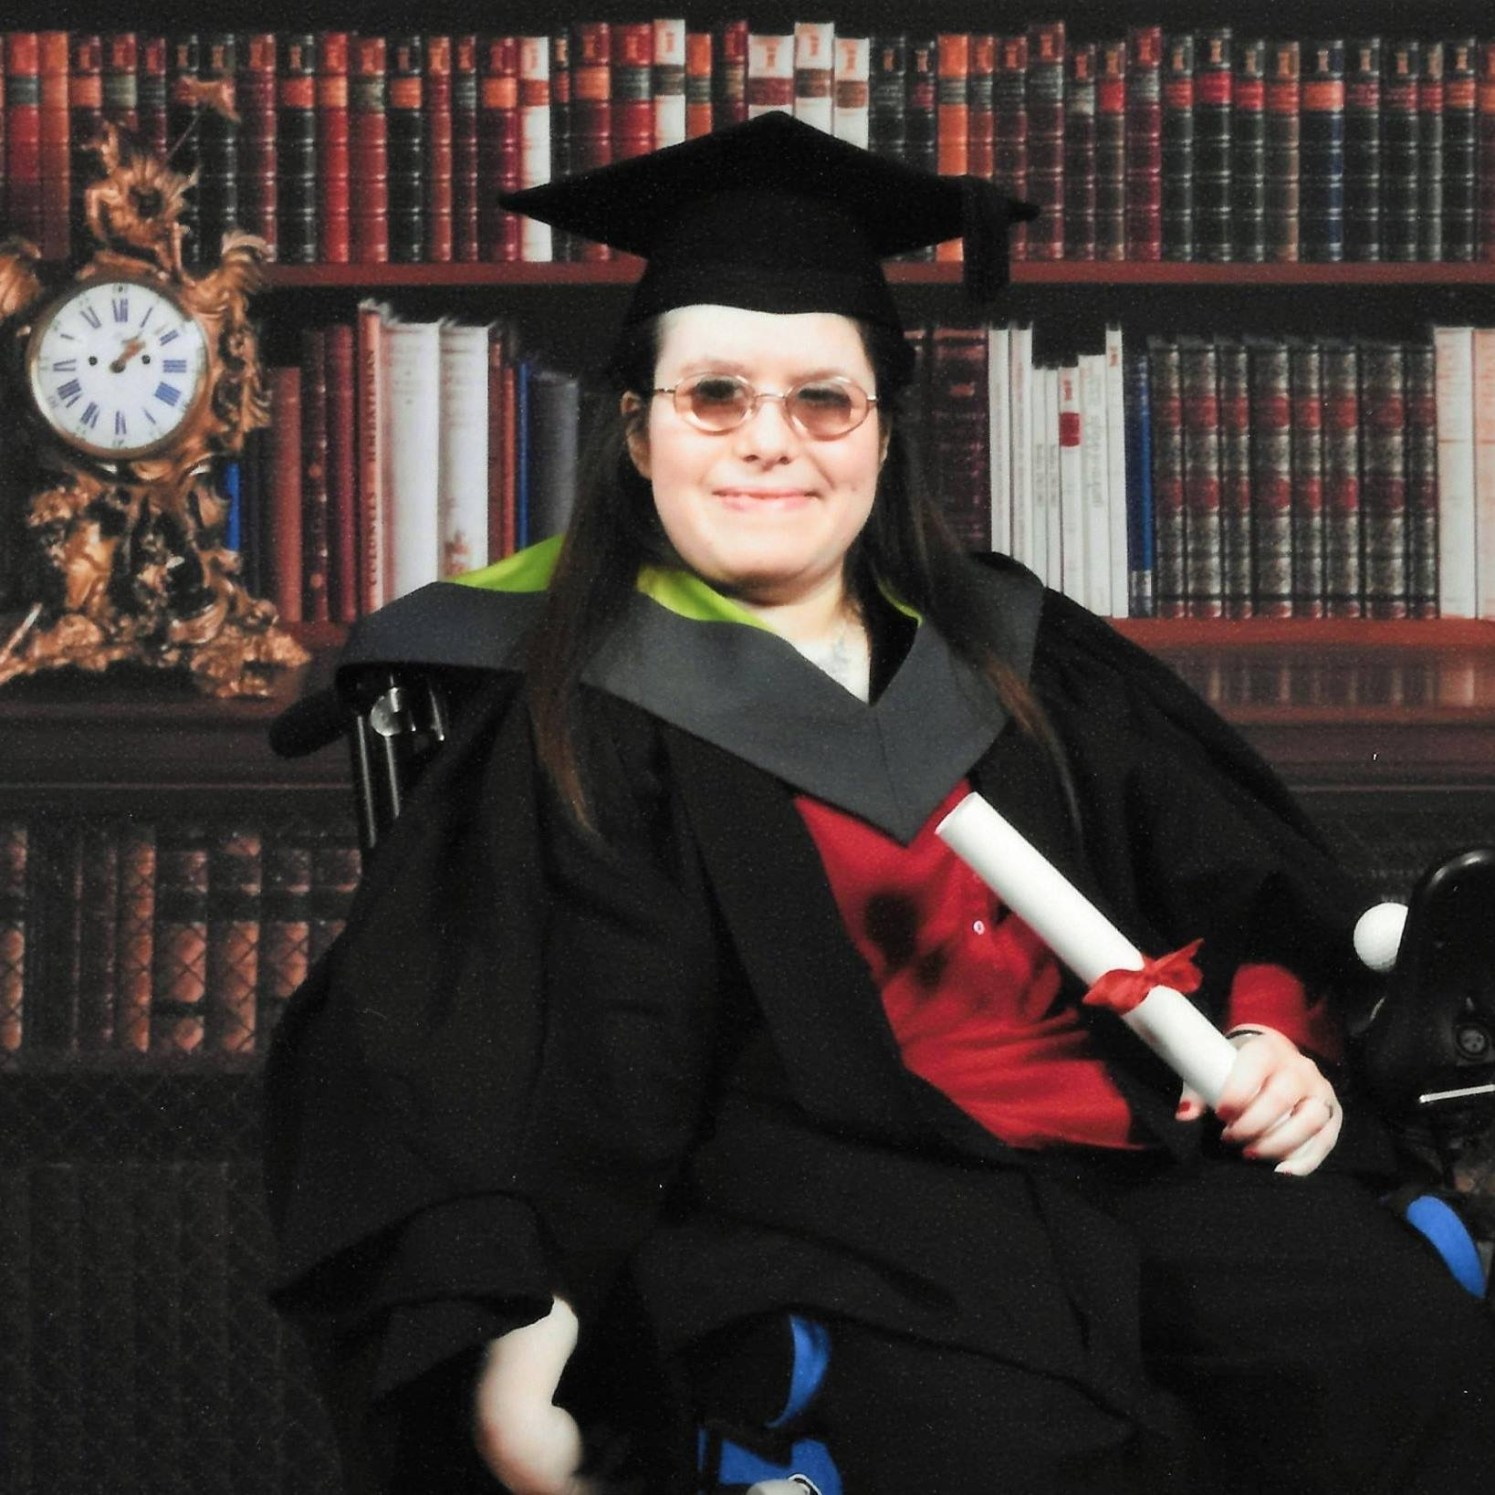 Emma's graduation photo, books behind her